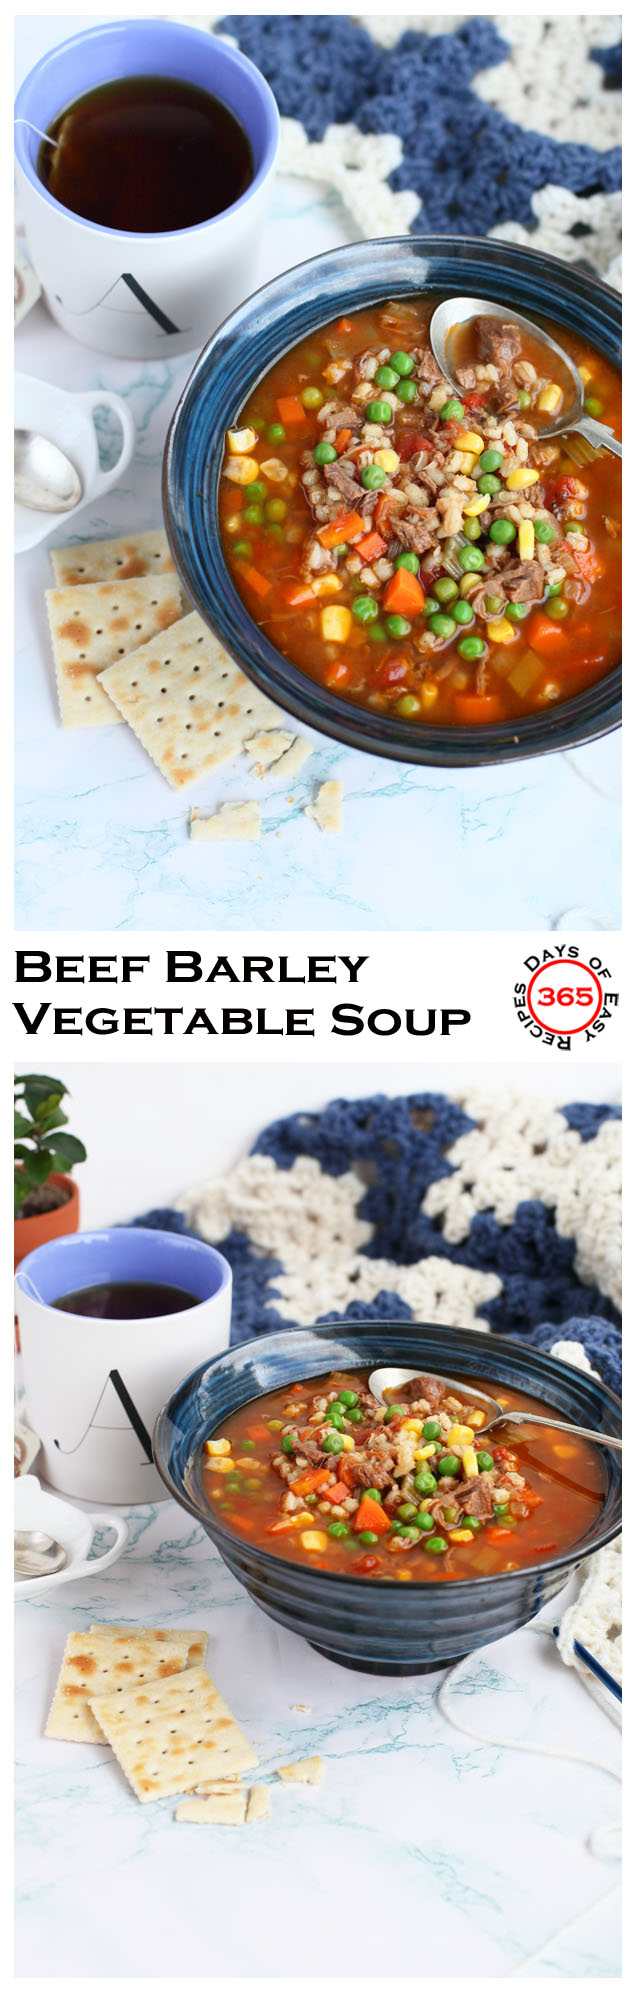 Beef Barley Vegetable Soup is a delicious hearty soup that's perfect for lunch or dinner. It's a great way to use up leftover beef from yesterday's roast and stocking your fridge with easy, grab and go meals during the week. Cooked on the stove or in the slow cooker, this soup will become a staple in your home